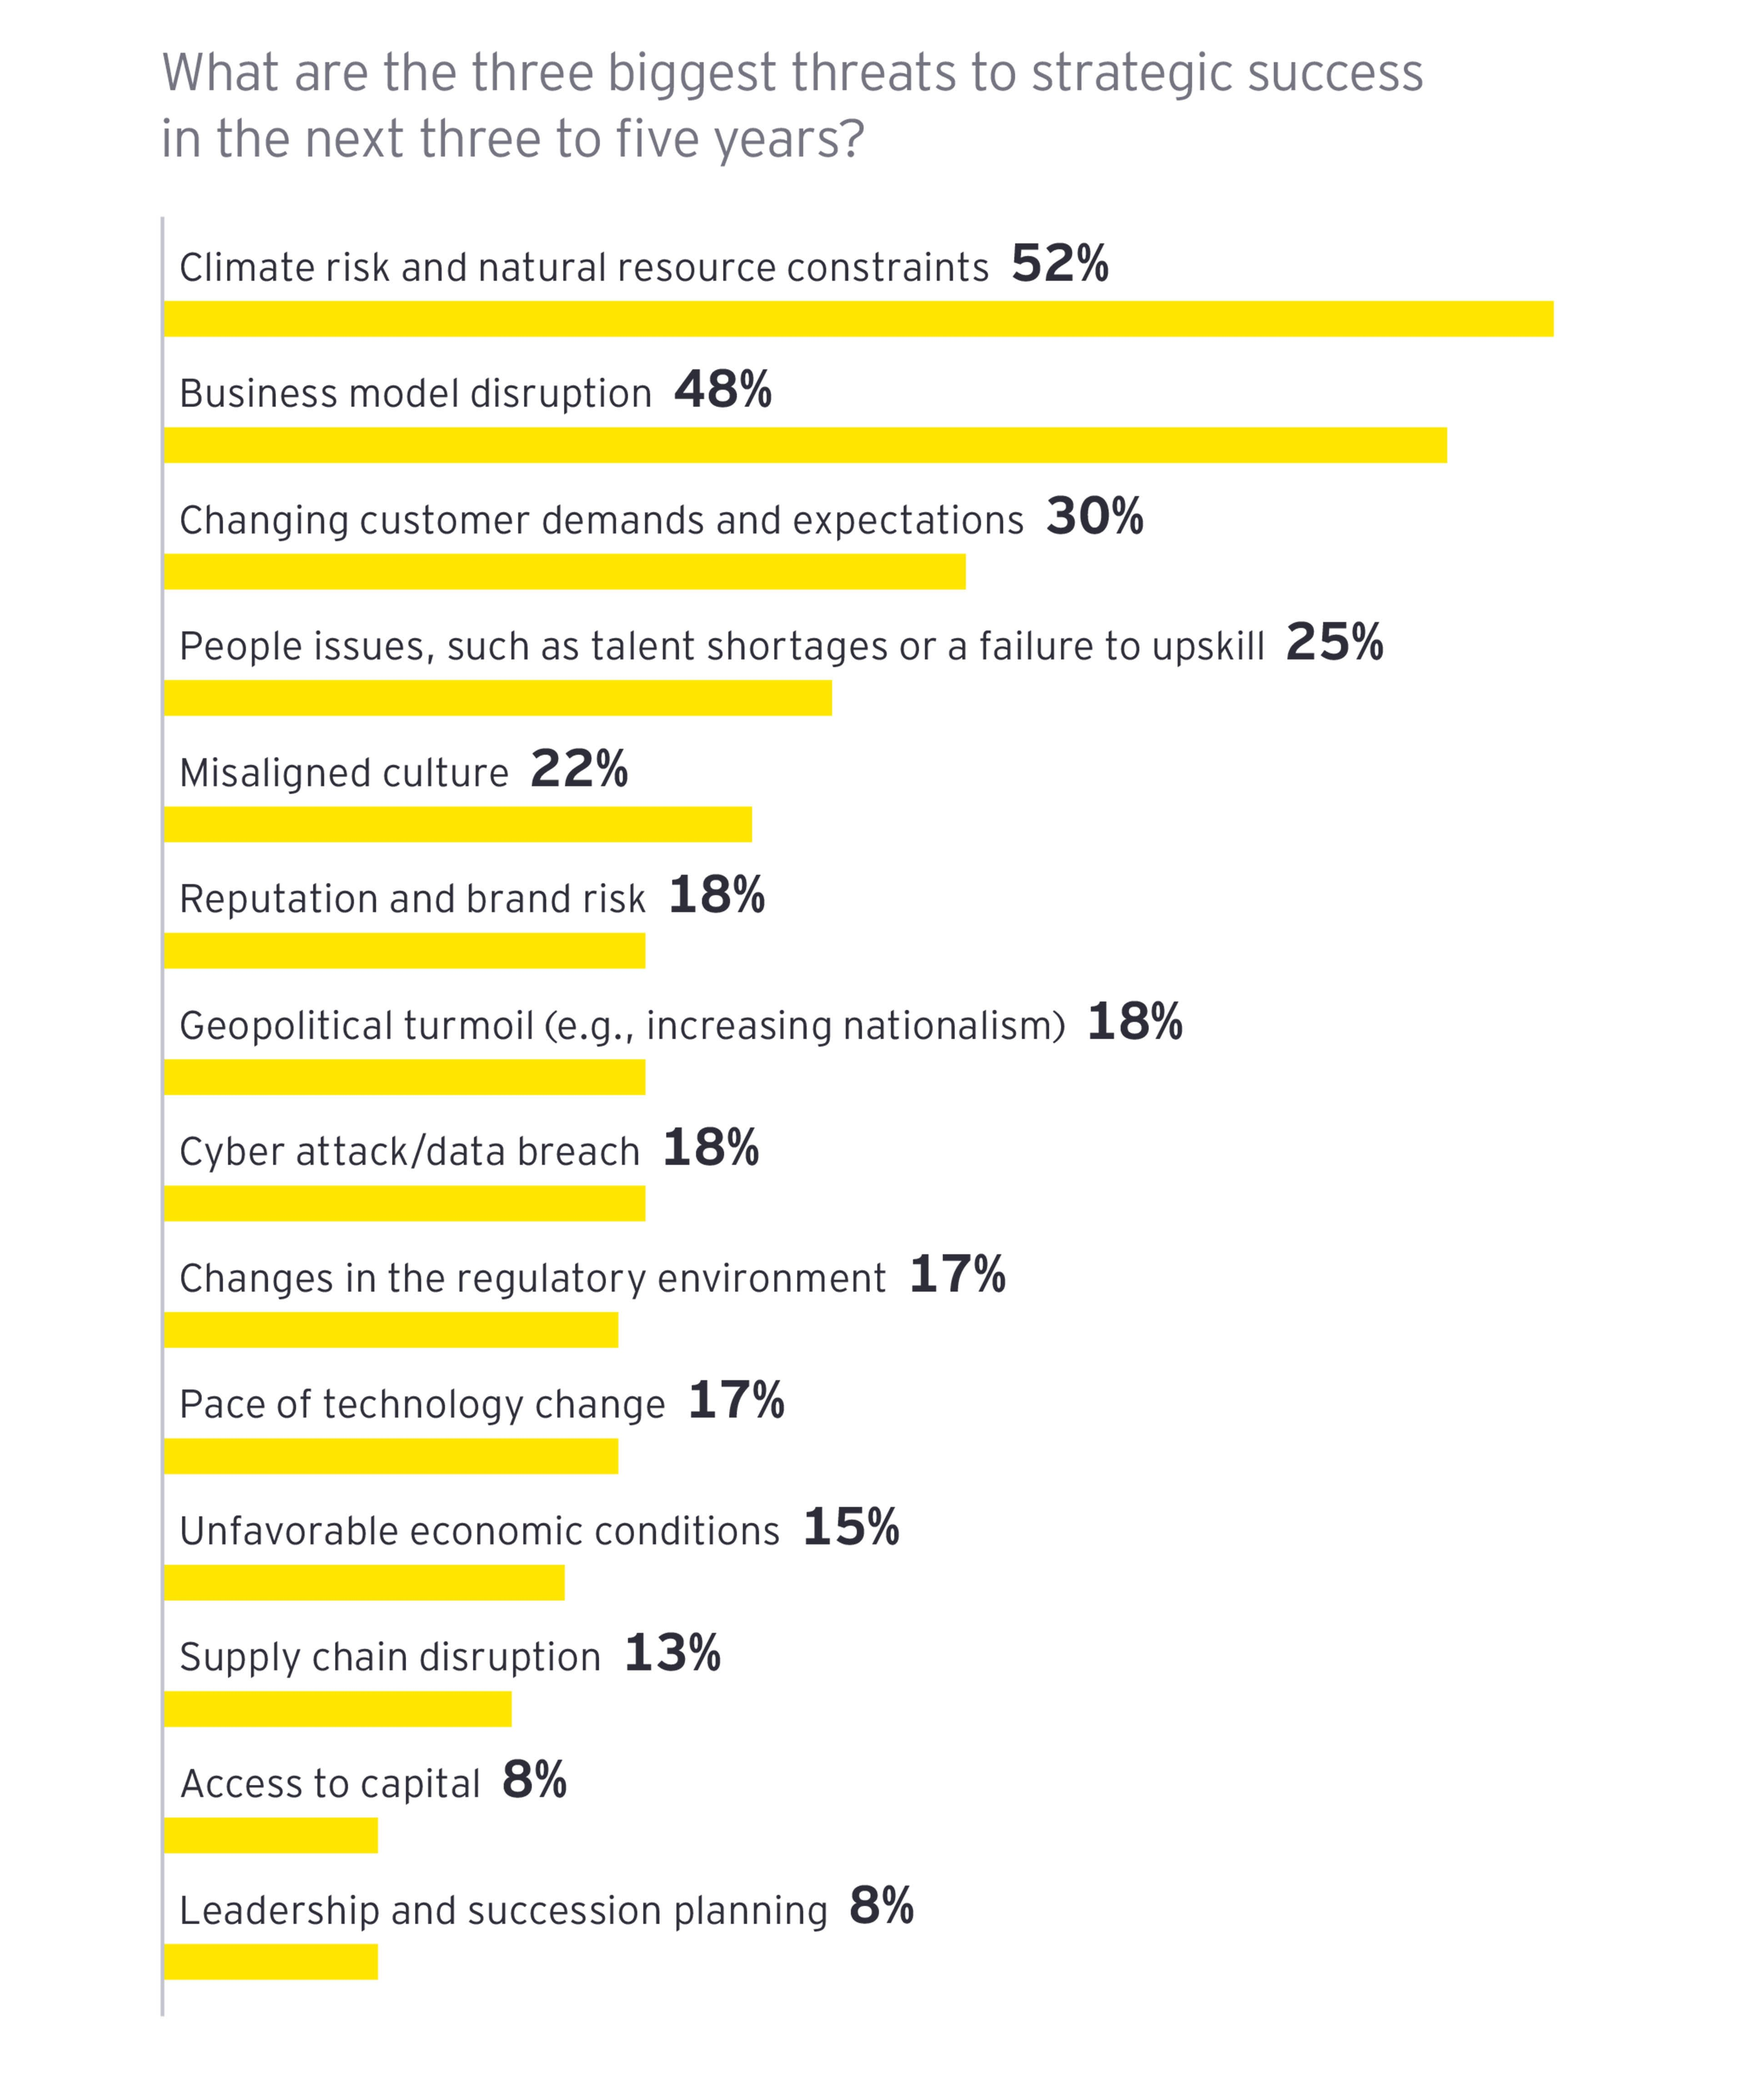 EY - Three biggest threats to strategic success in the next three to five years